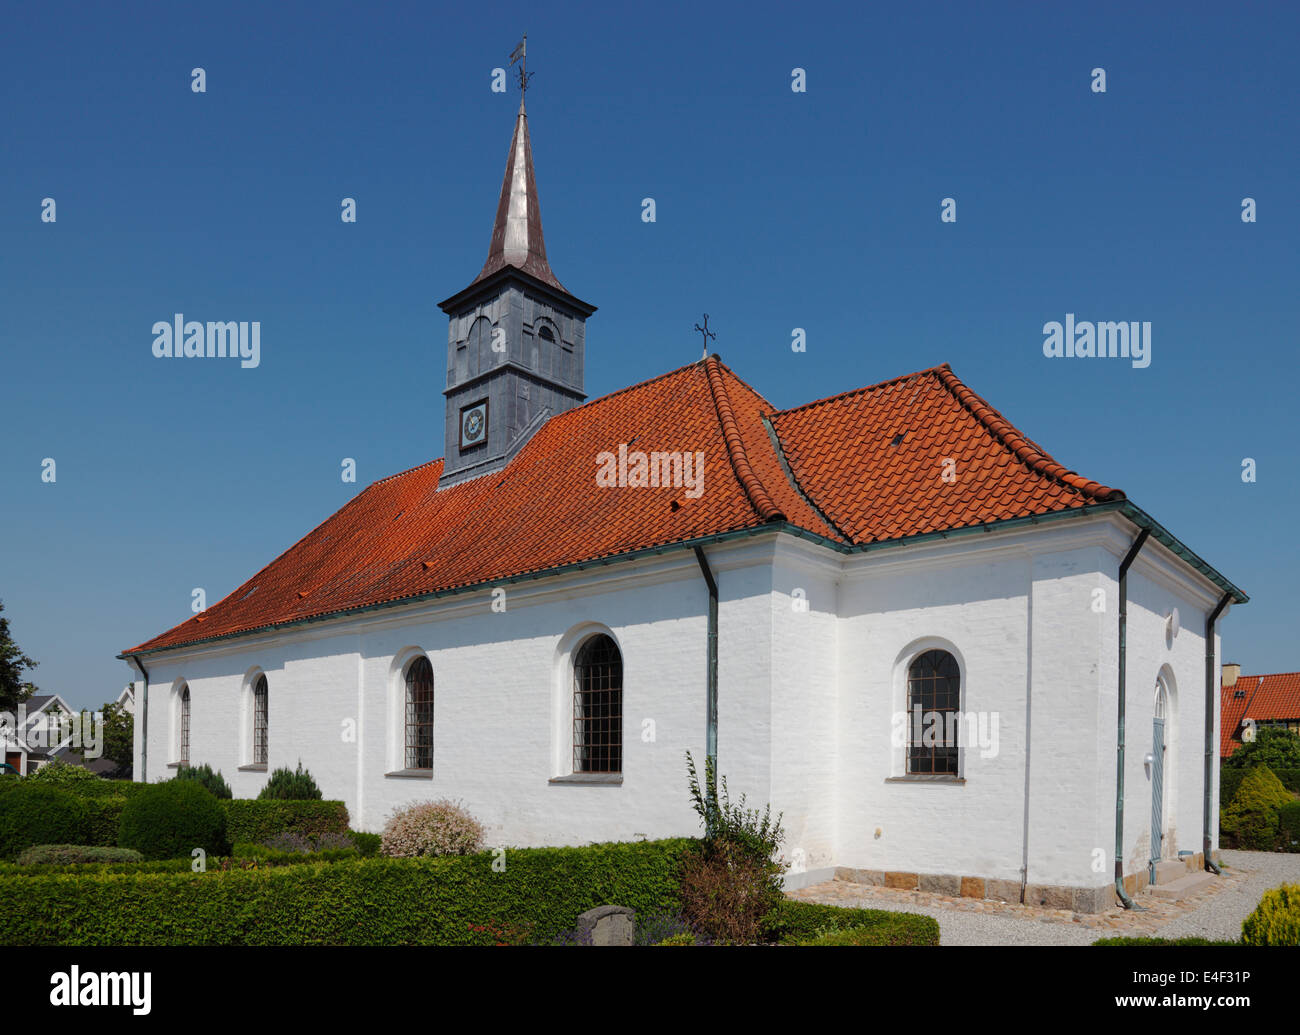 Hornbæk Church or Hornbaek Church, North Zealand, Denmark - Stock Image